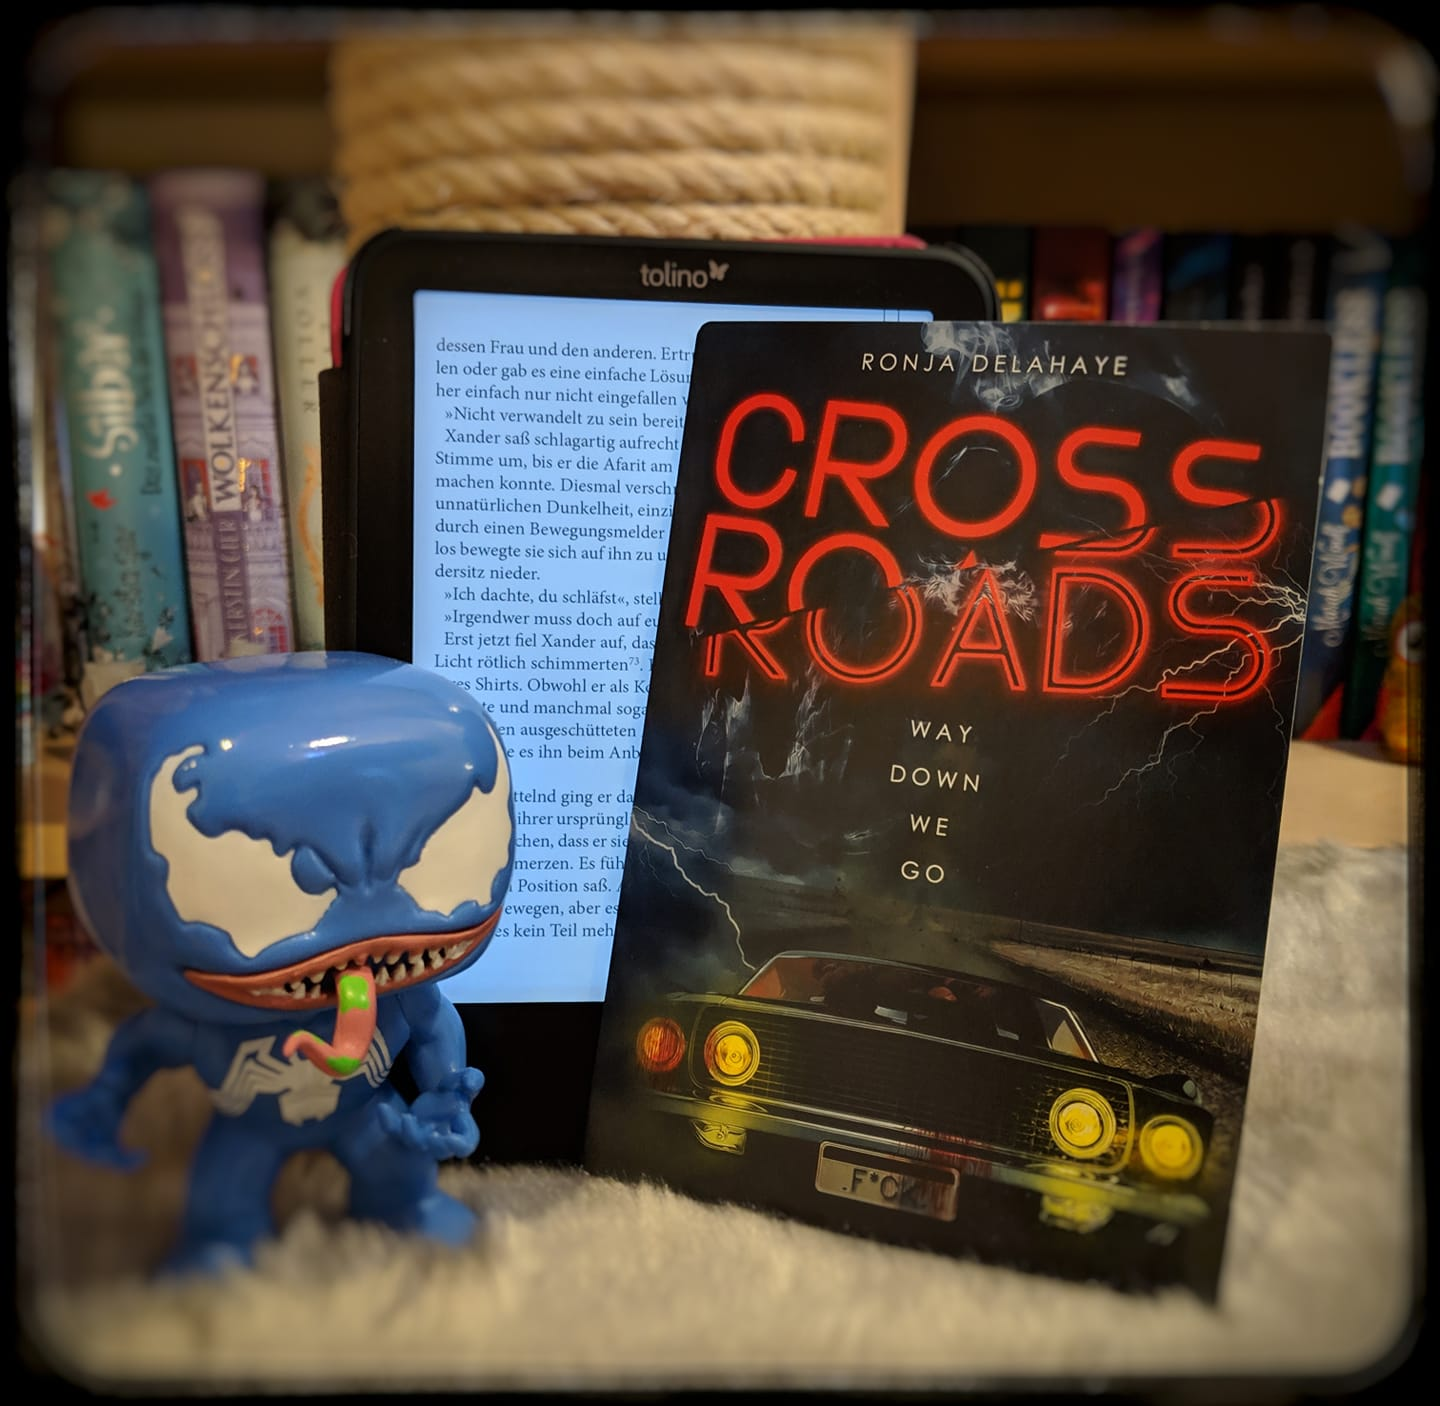 "Rezension – Crossroads "" Way down we go"""